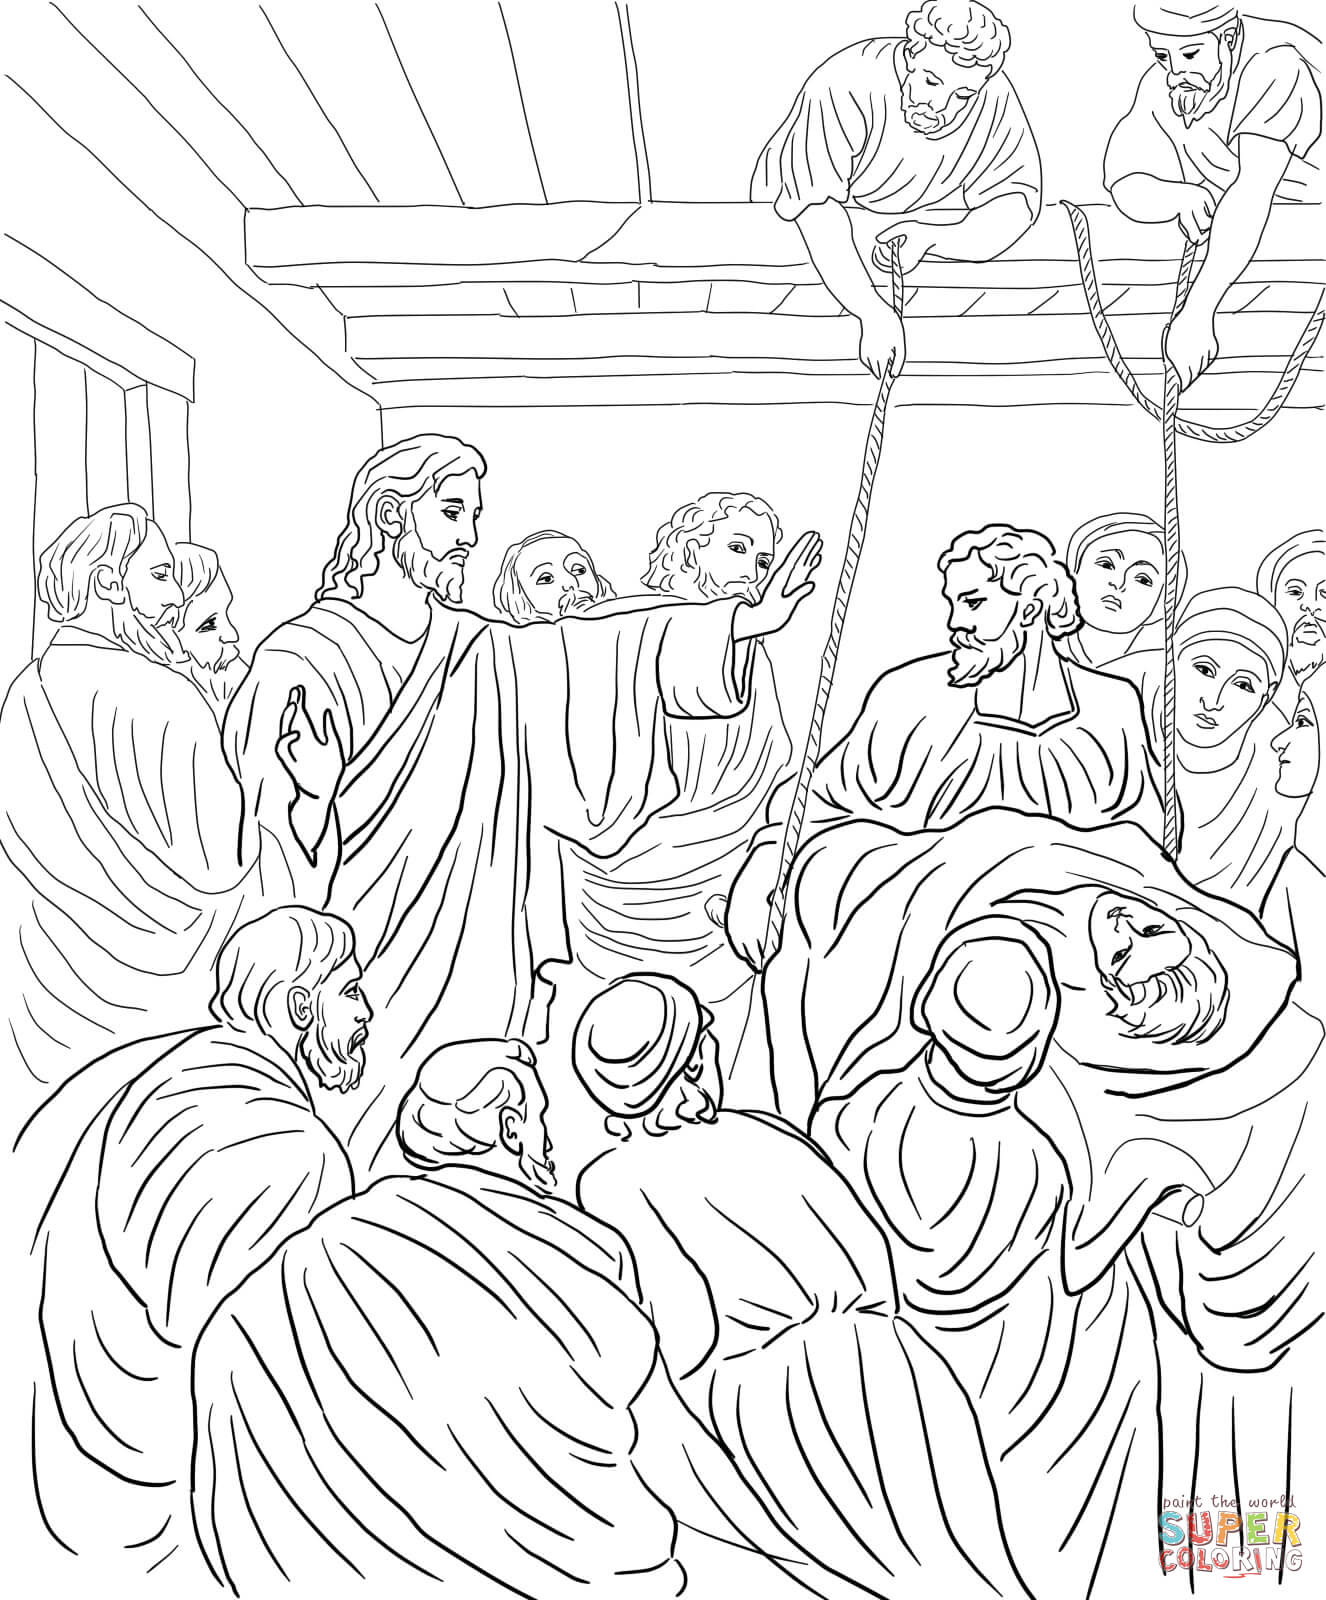 jesus heals the paralyzed man coloring free printable home paralytic rcdrpmrmi sloth helm coloring pages Jesus Heals The Paralytic Man Coloring Page